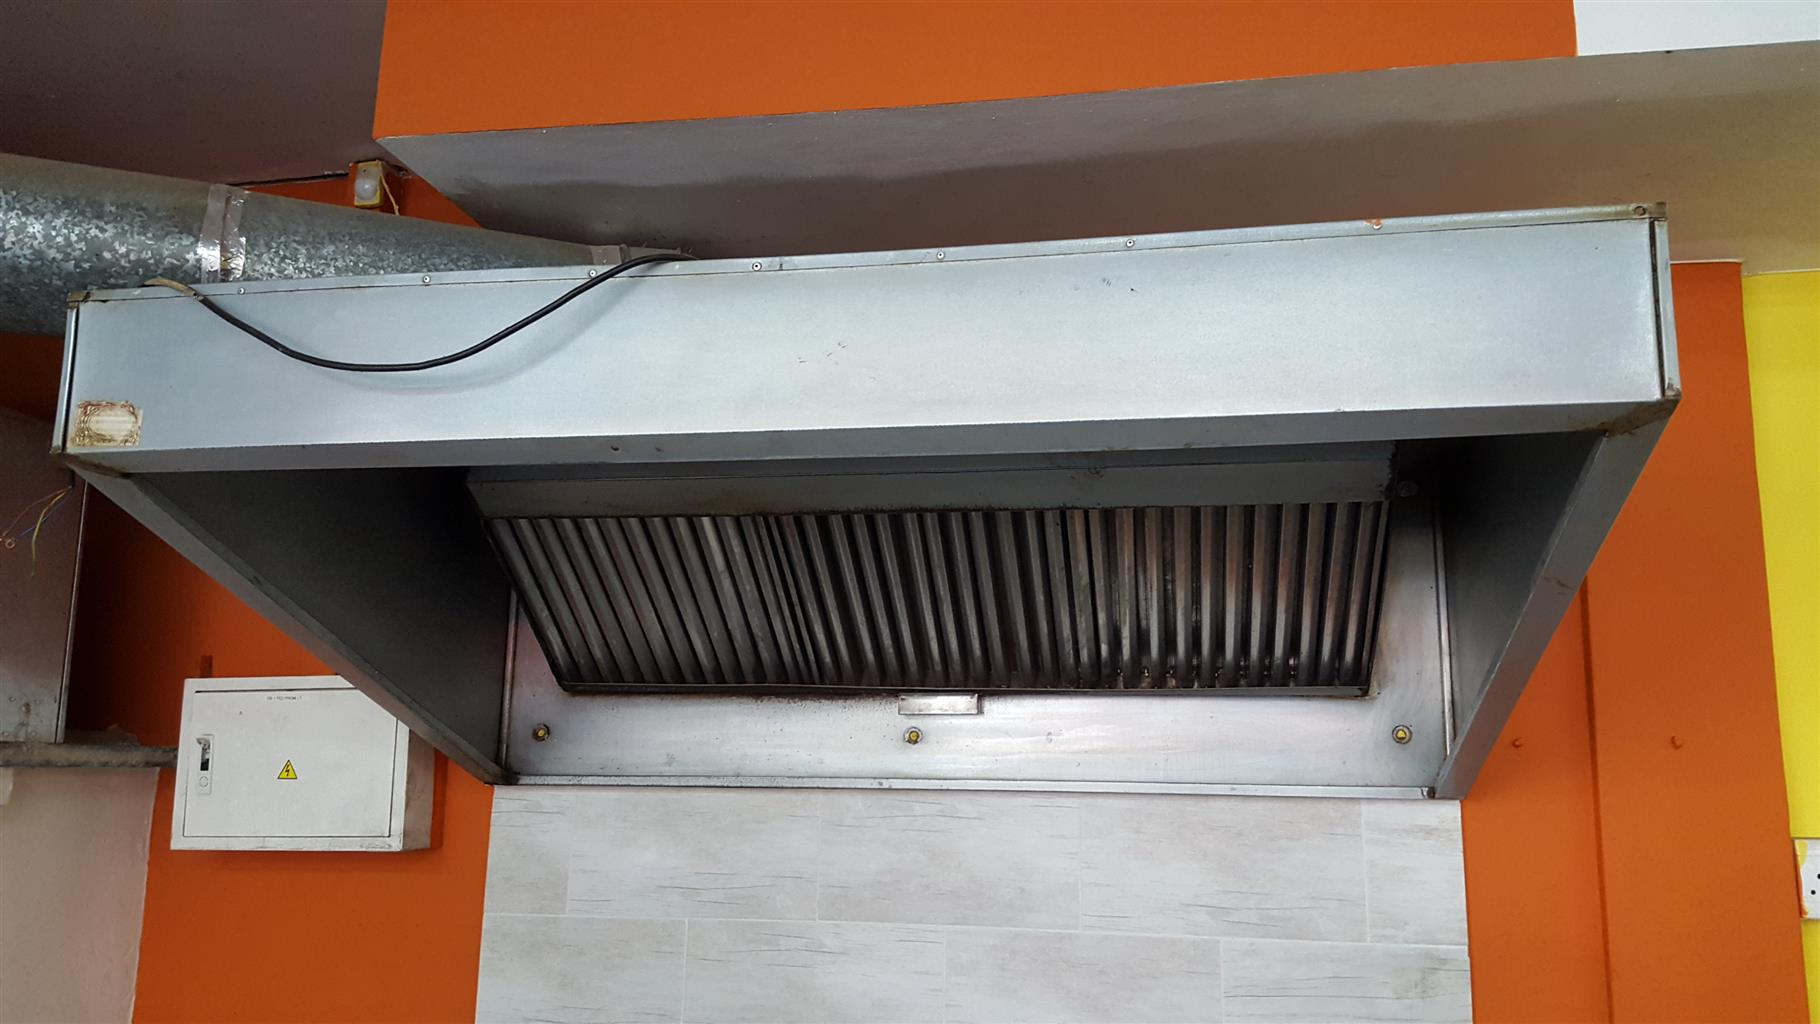 Extractor canopy and the Fan